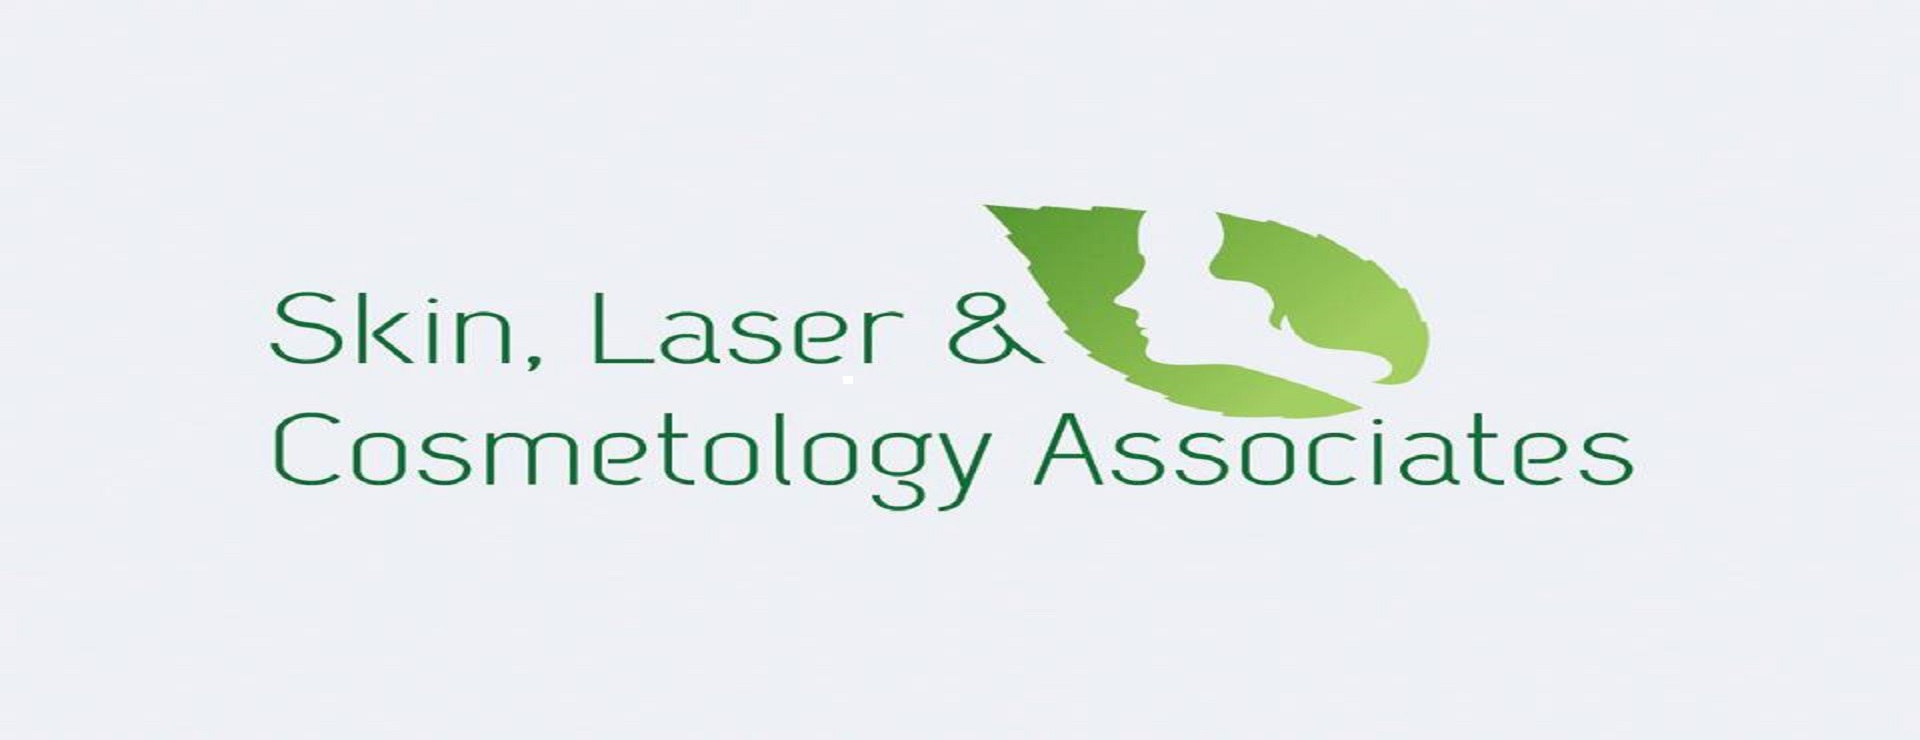 Skin laser and cosmetology associates front